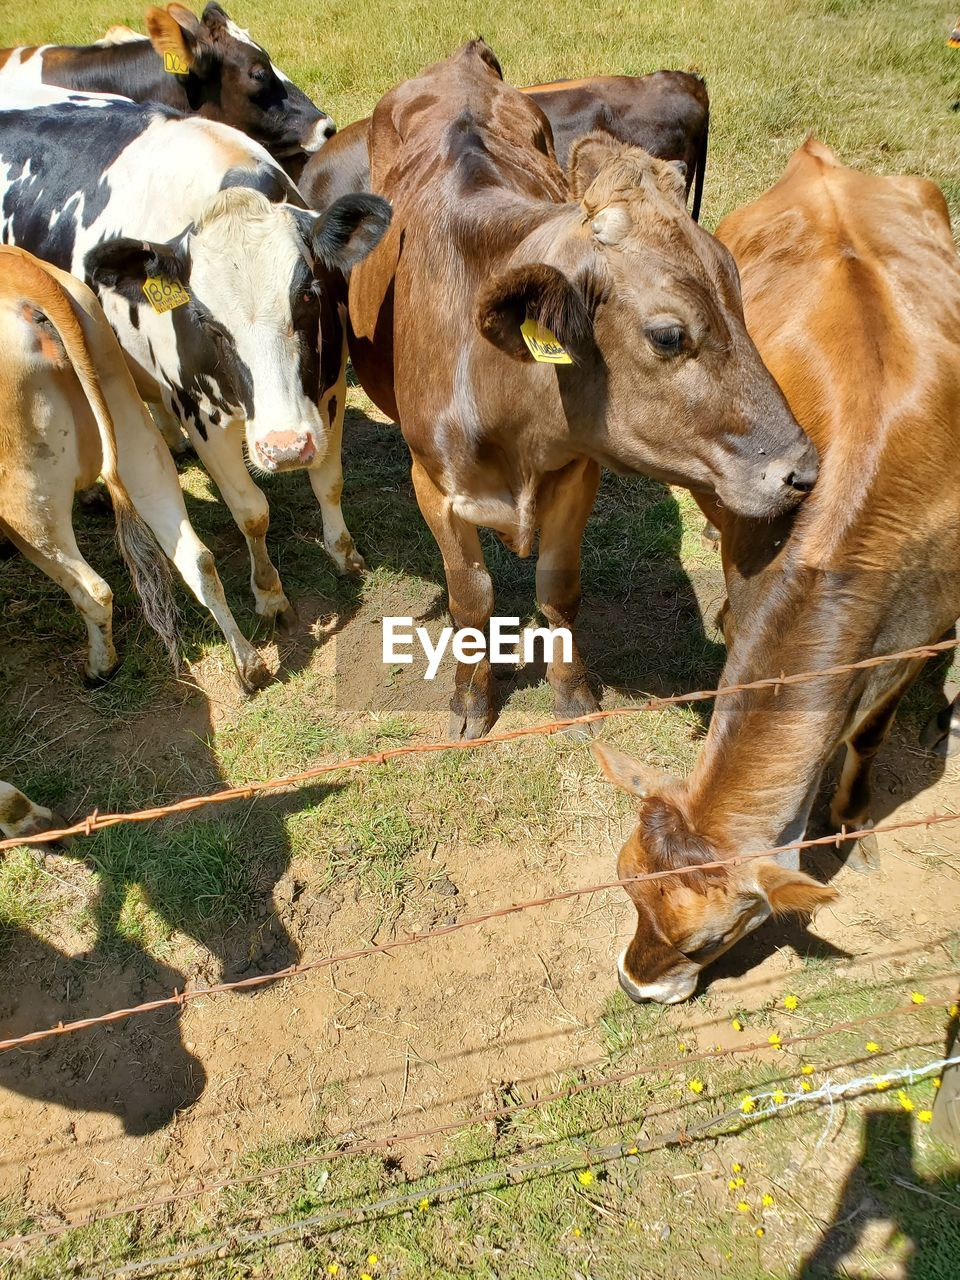 VIEW OF COW IN THE ANIMAL